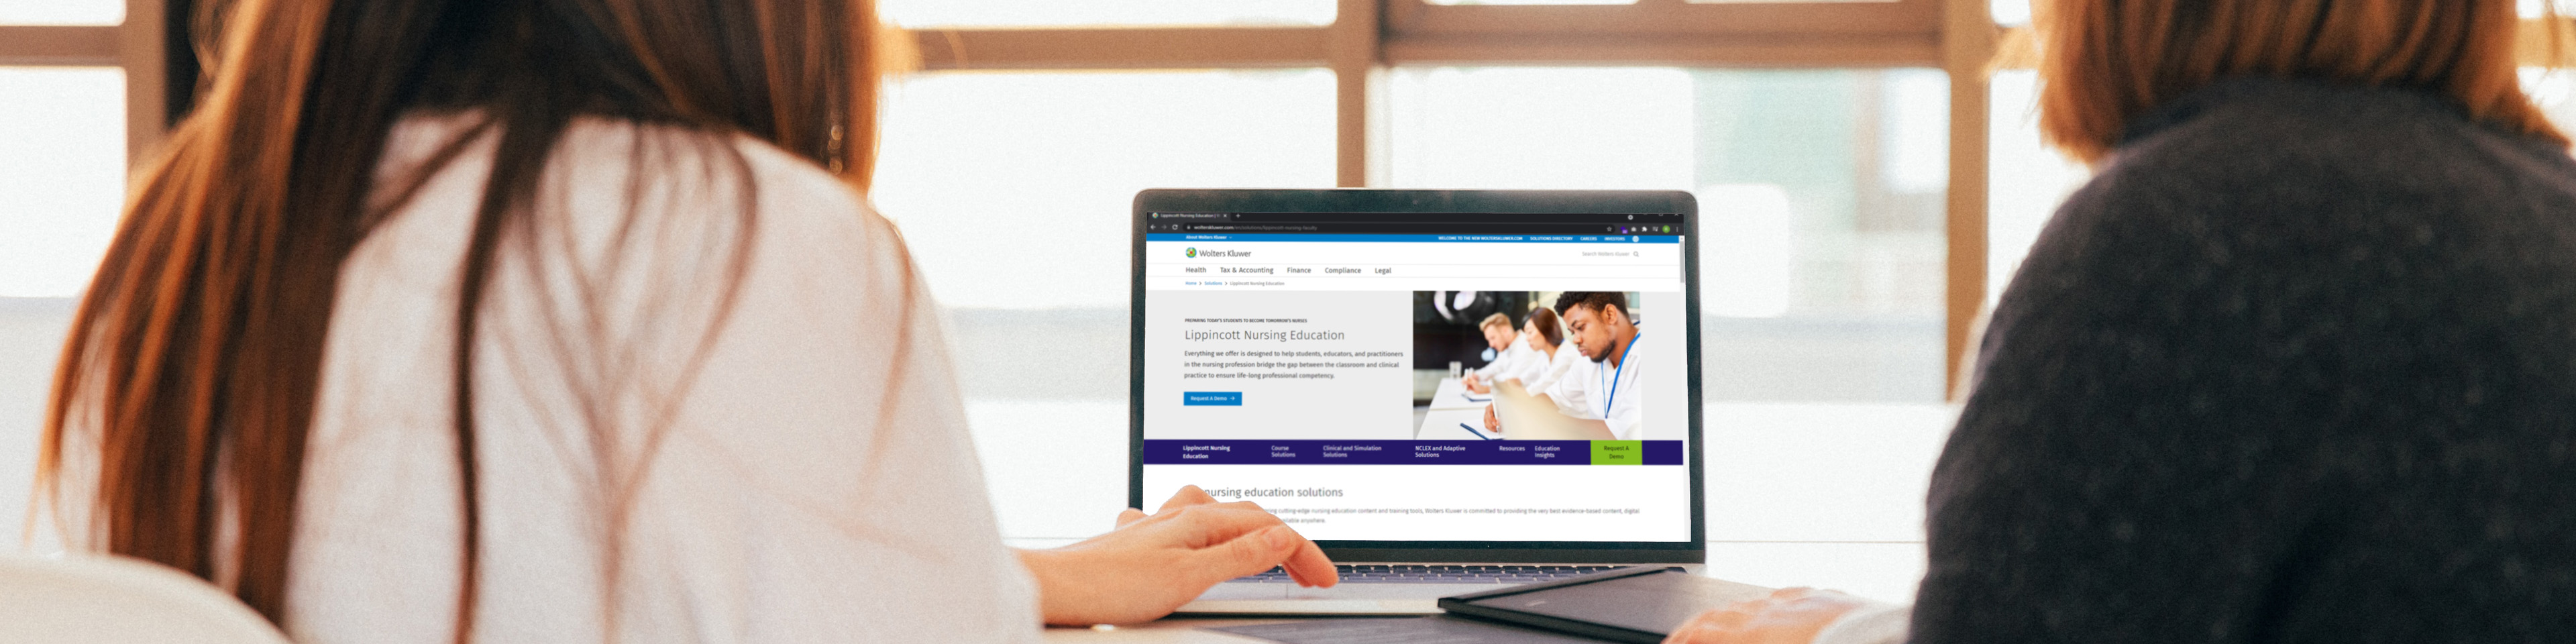 Two women looking at Lippincott Nursing Education website on a laptop screen, their backs to the camera